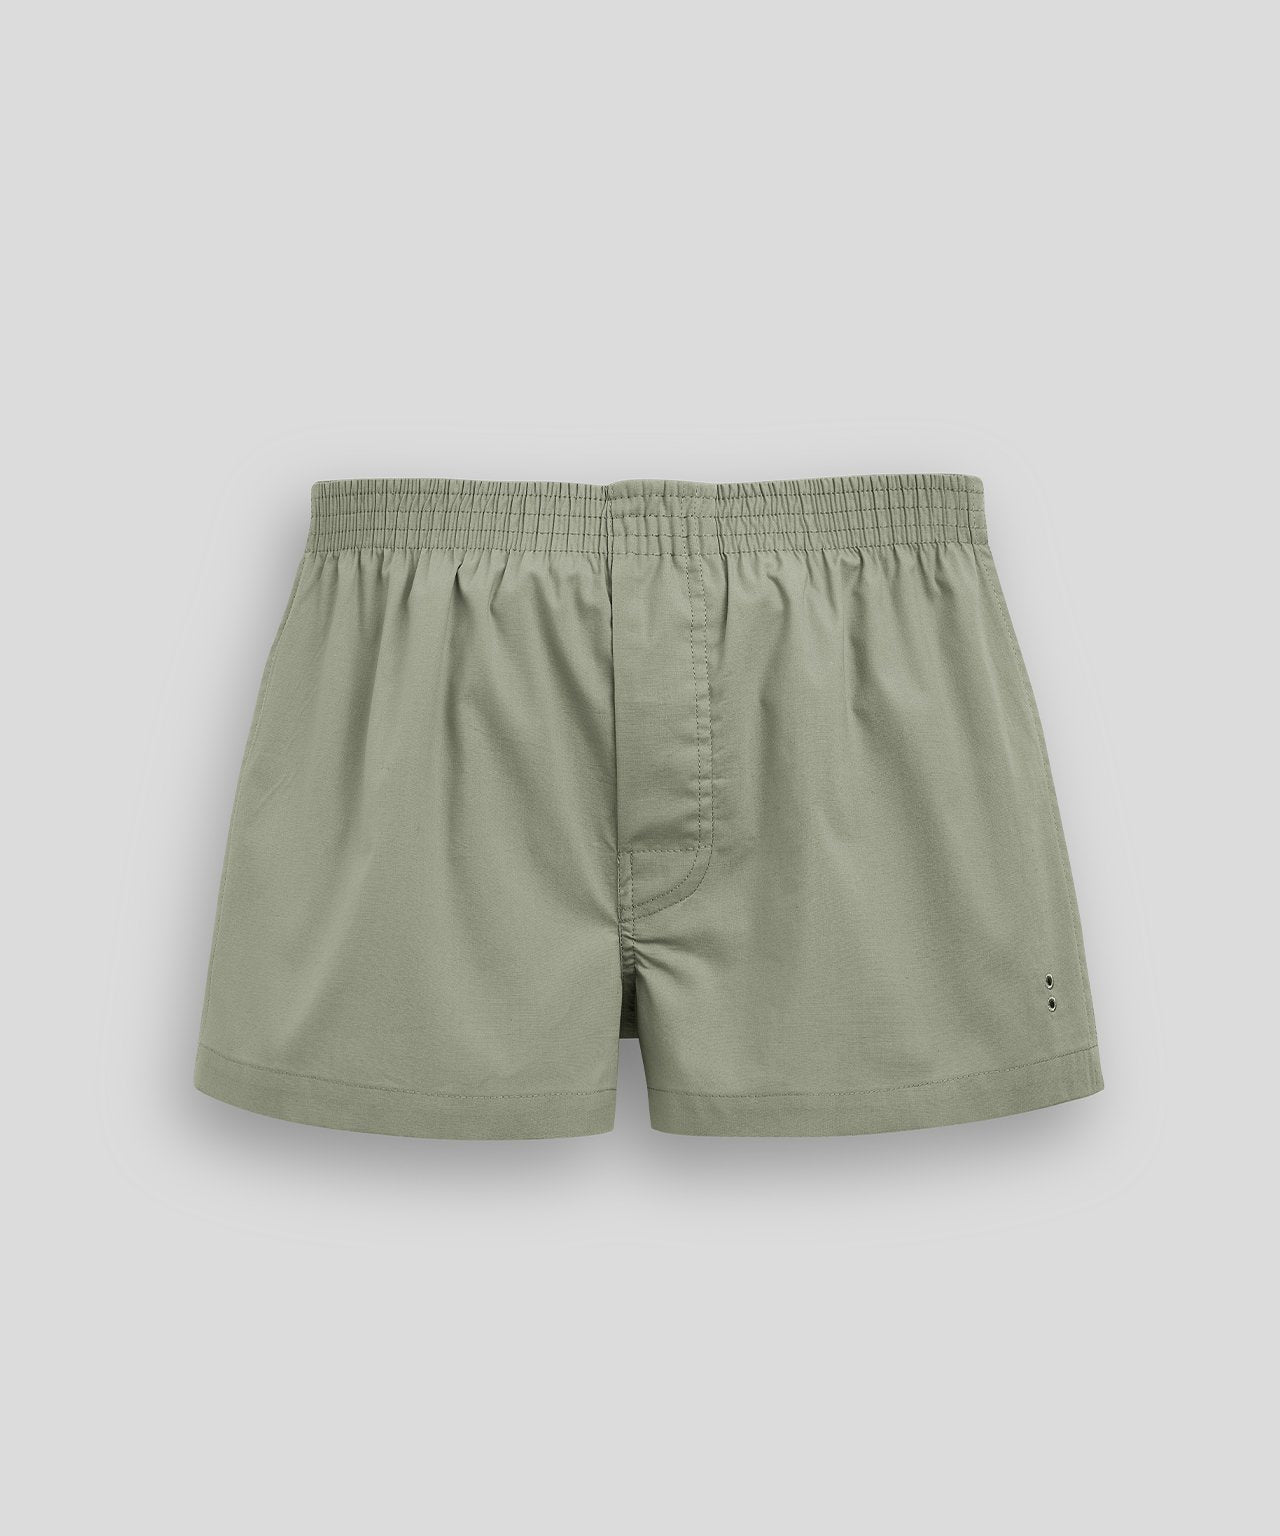 747 Boxer Shorts Kit - khaki